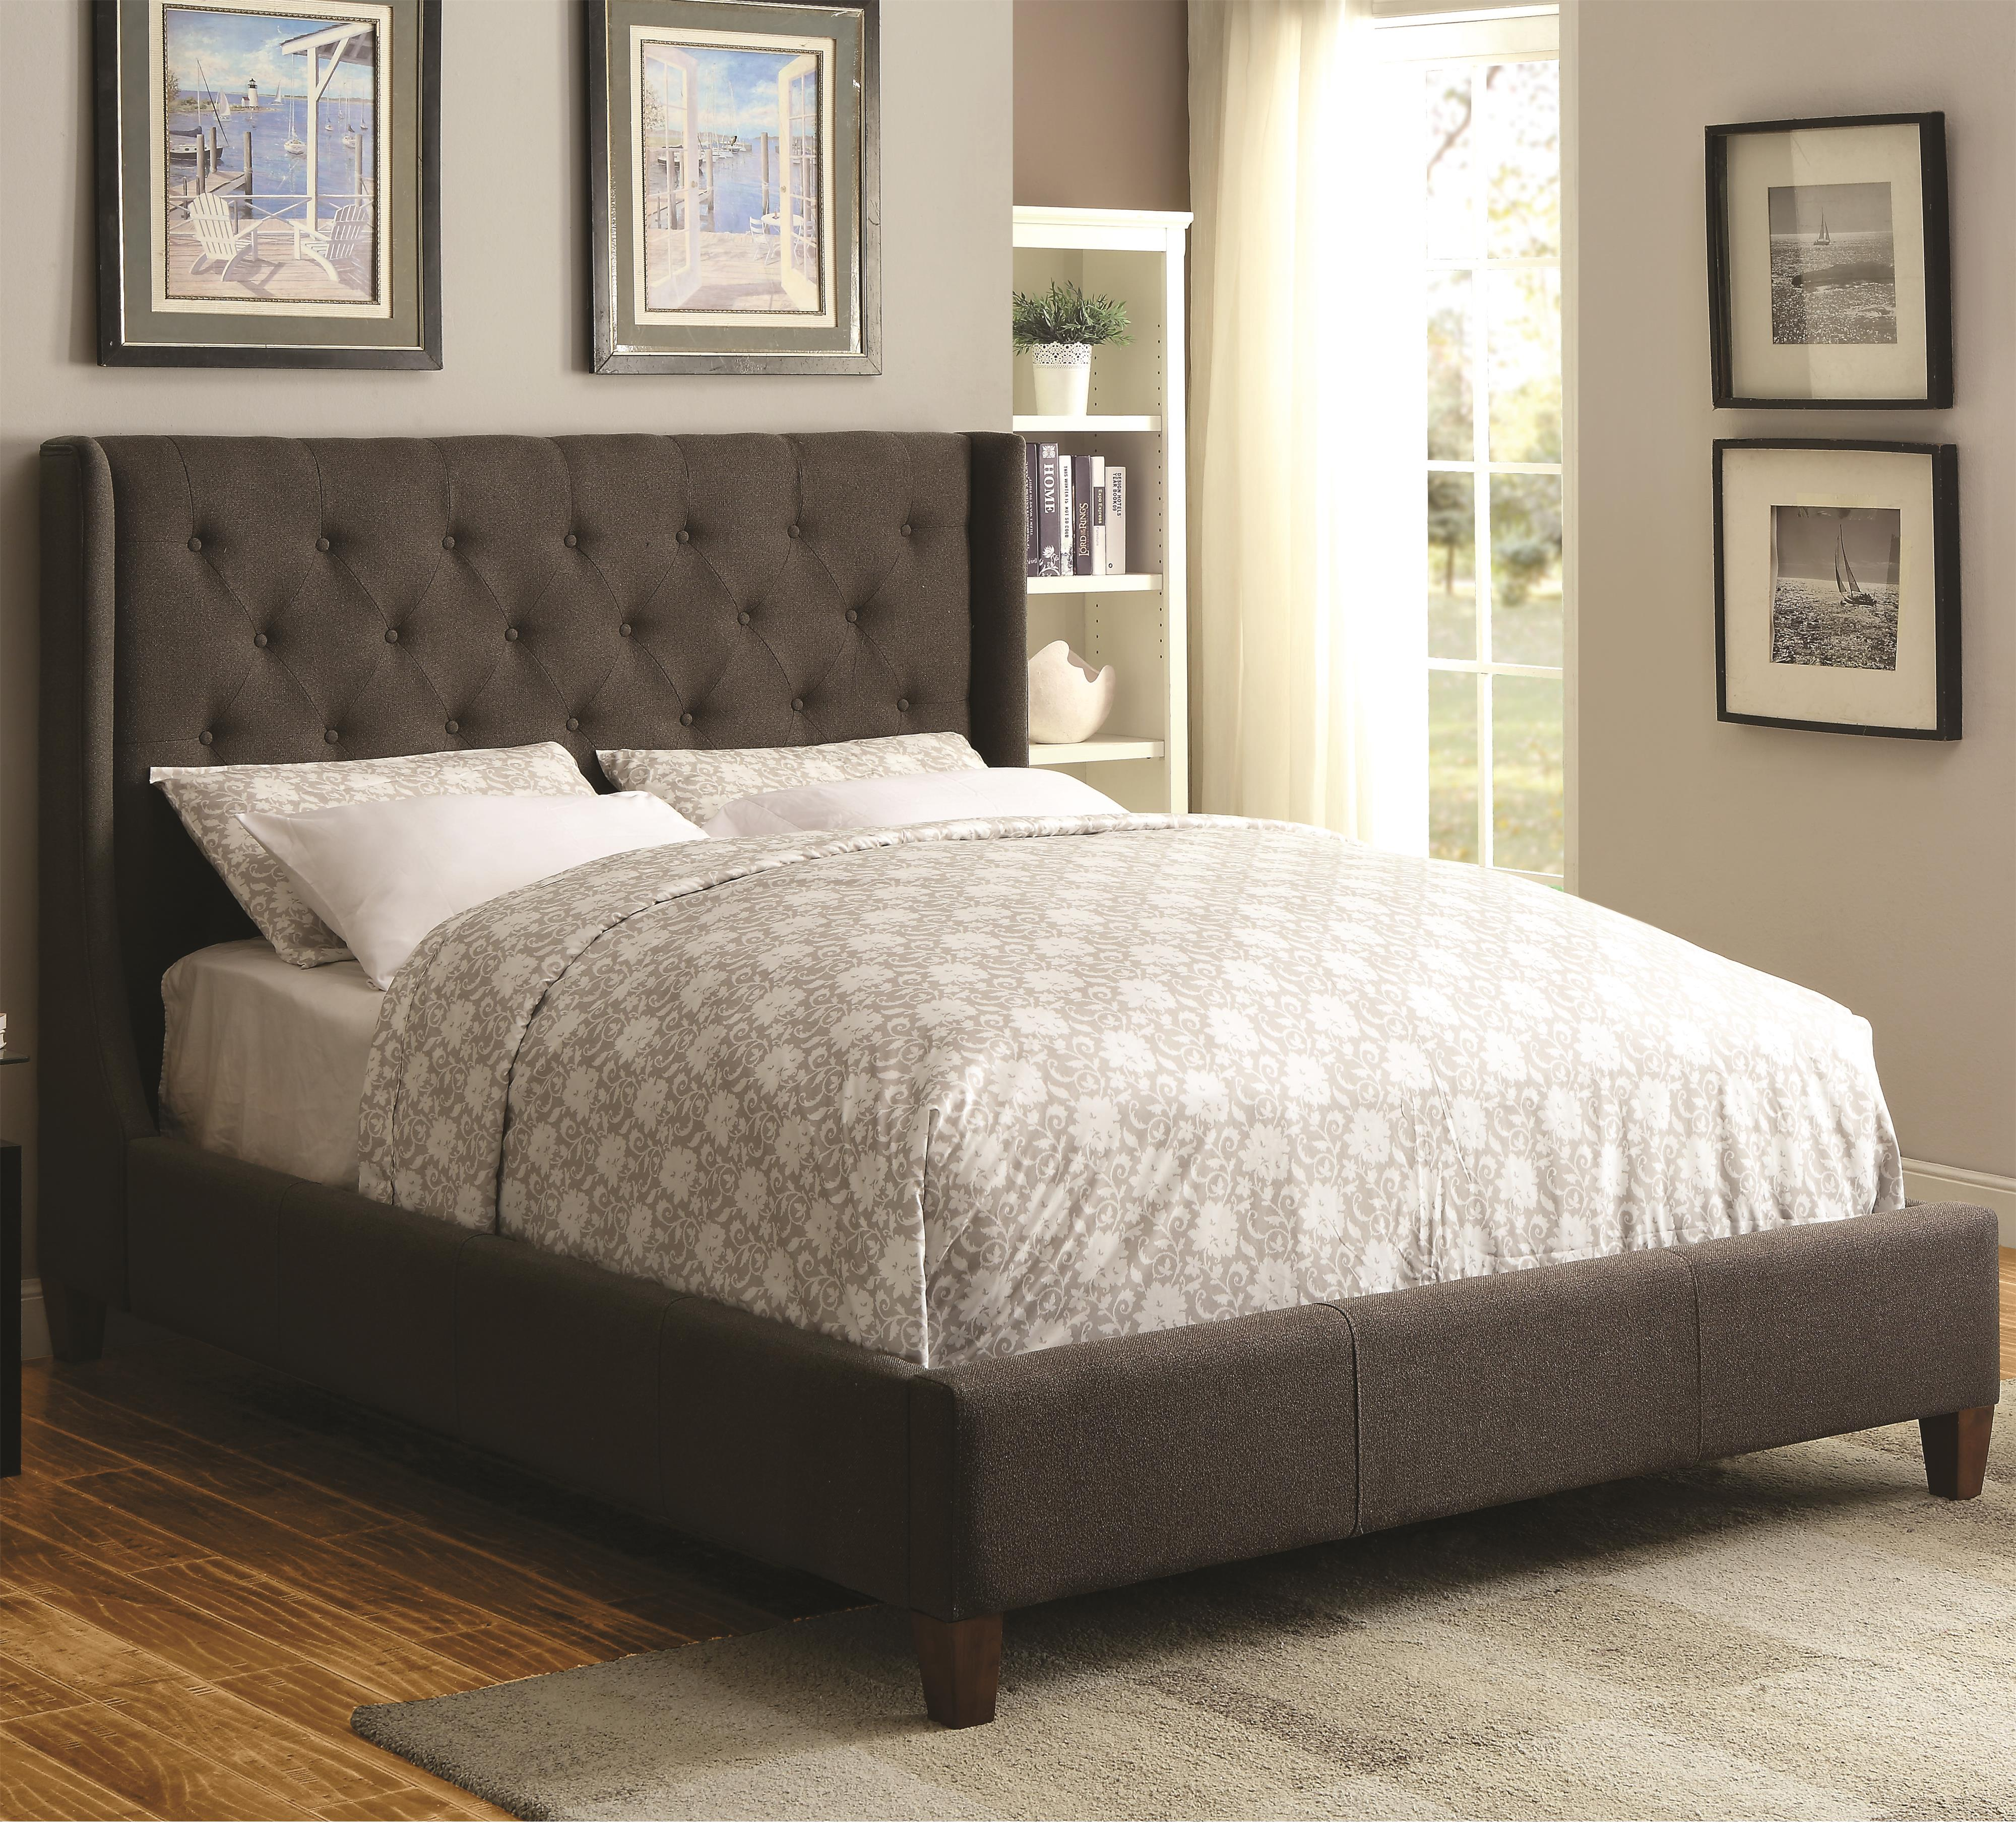 Coaster upholstered beds 300453ke upholstered king bed for Upholstered beds